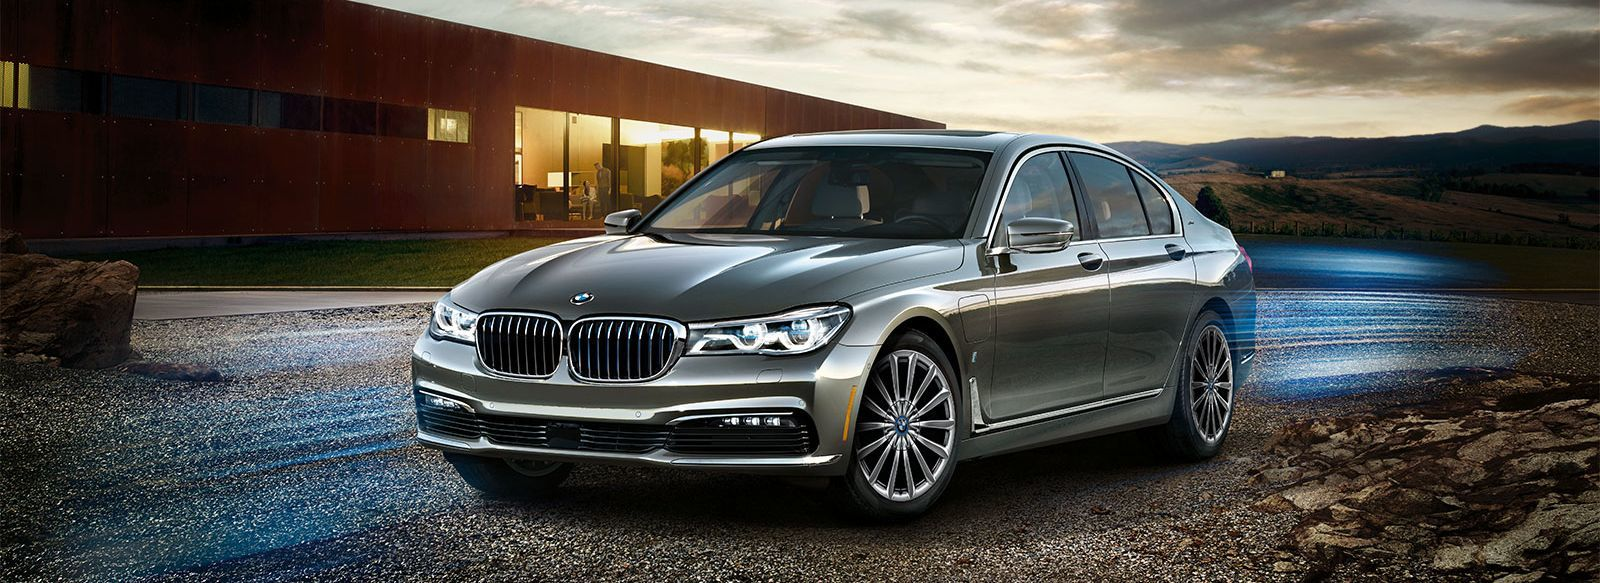 by the coupe based bmw shots upon be magazine series car in sale production for dreamliner will latest profile bmws pic s coming spy